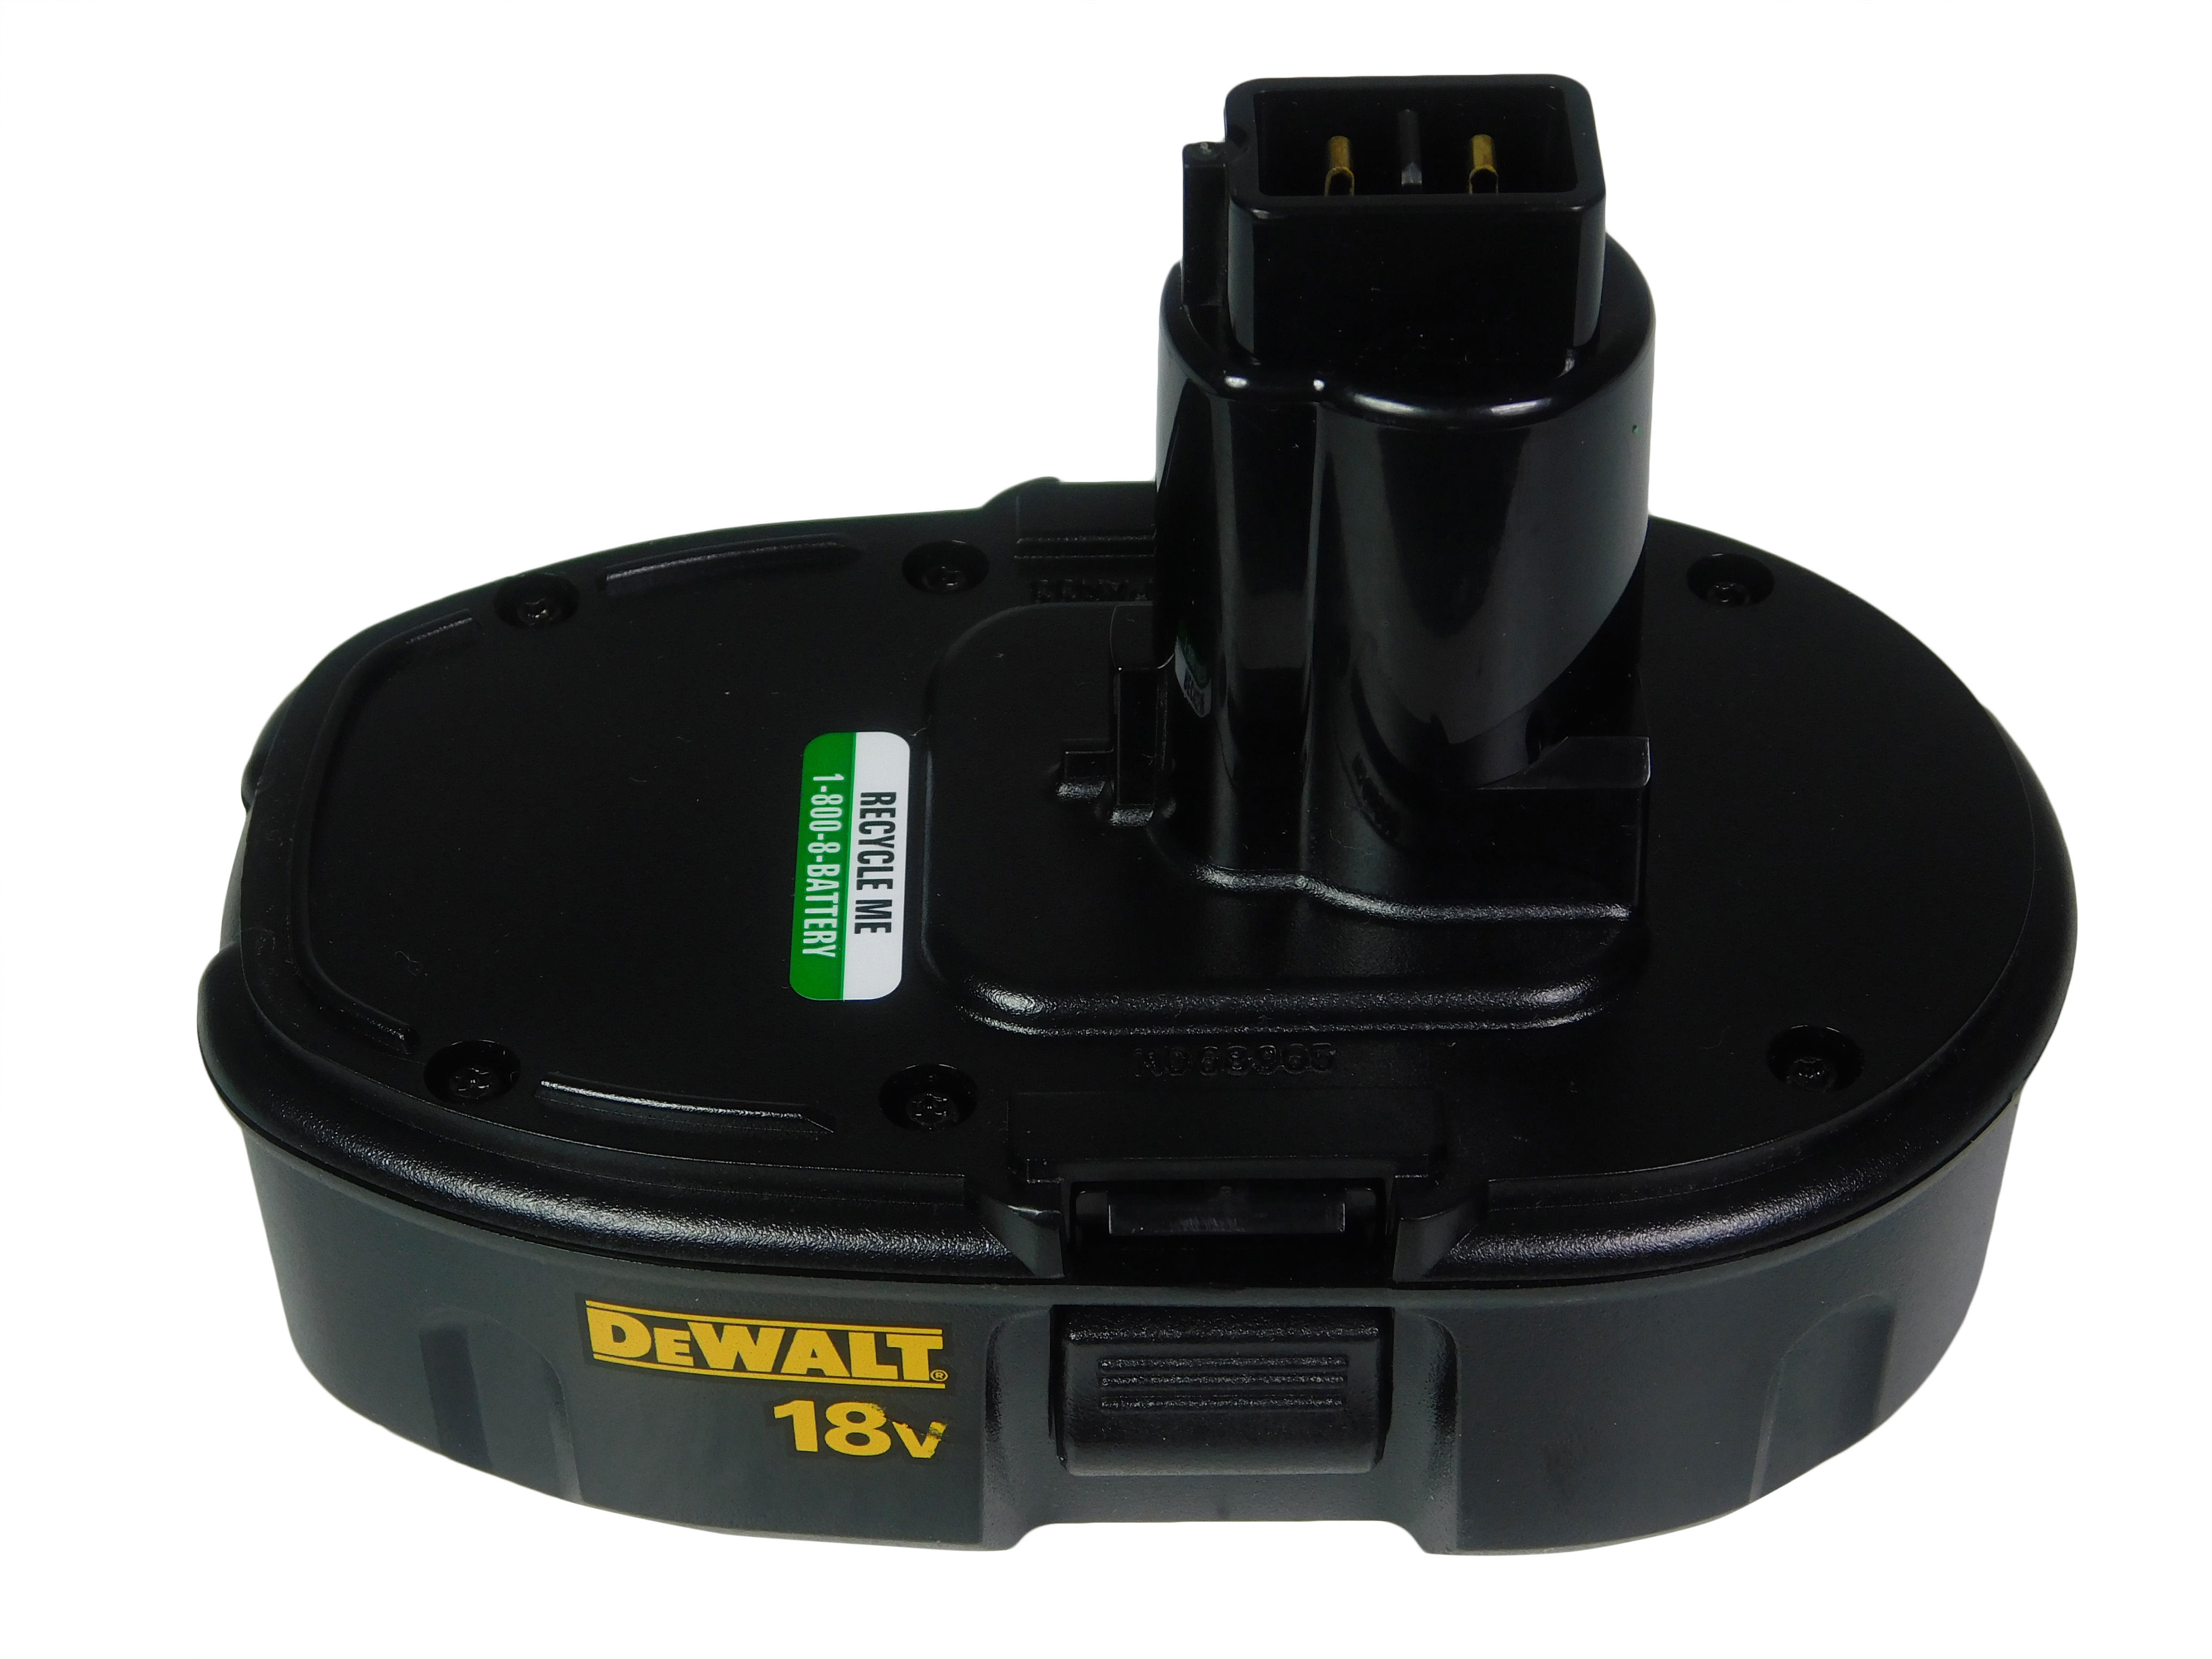 Dewalt-DC9098-18V-Ni-Cad-Battery-Single-Pack-image-10